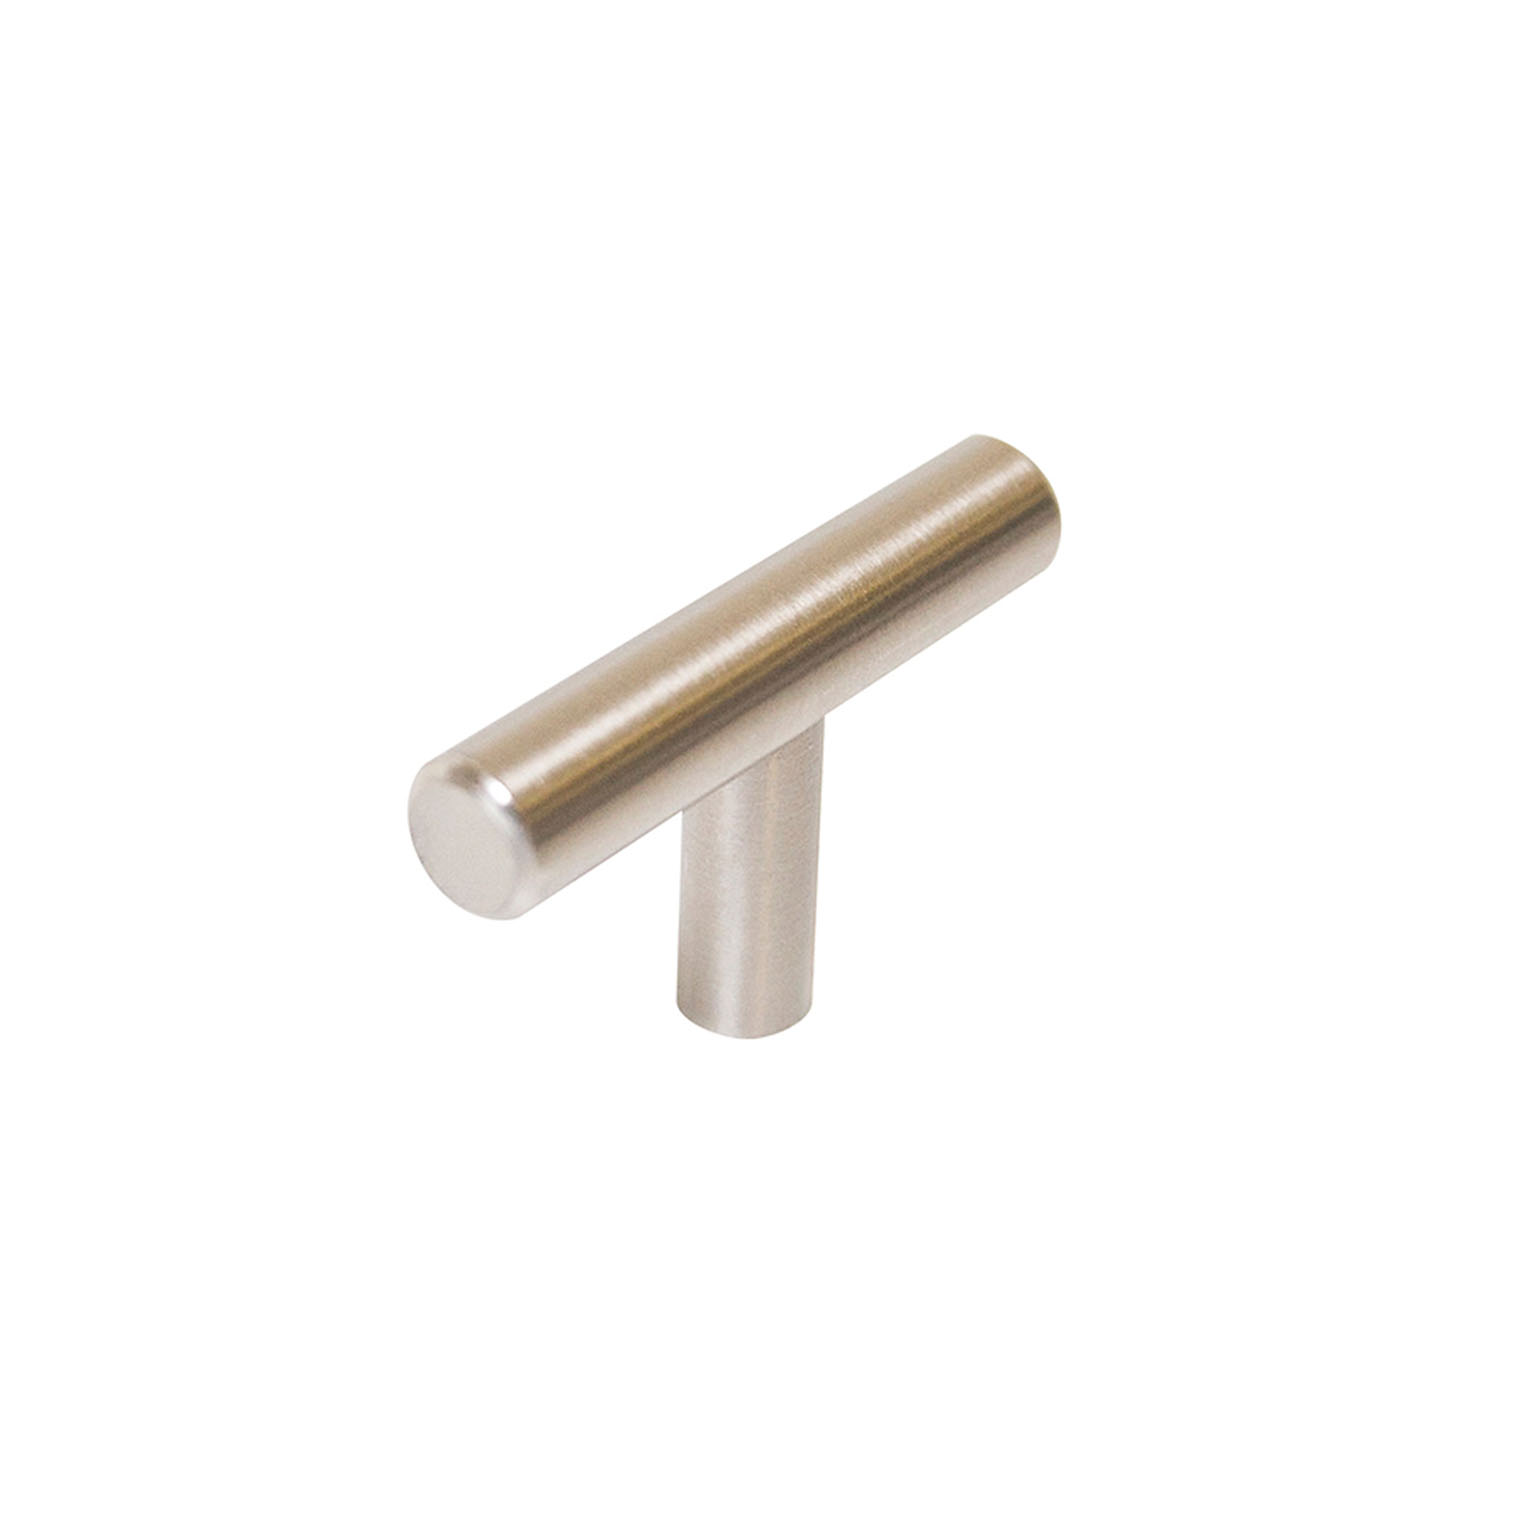 Design House 1.5 in. T-Pull Cabinet Knob, Stainless Steel - 205682